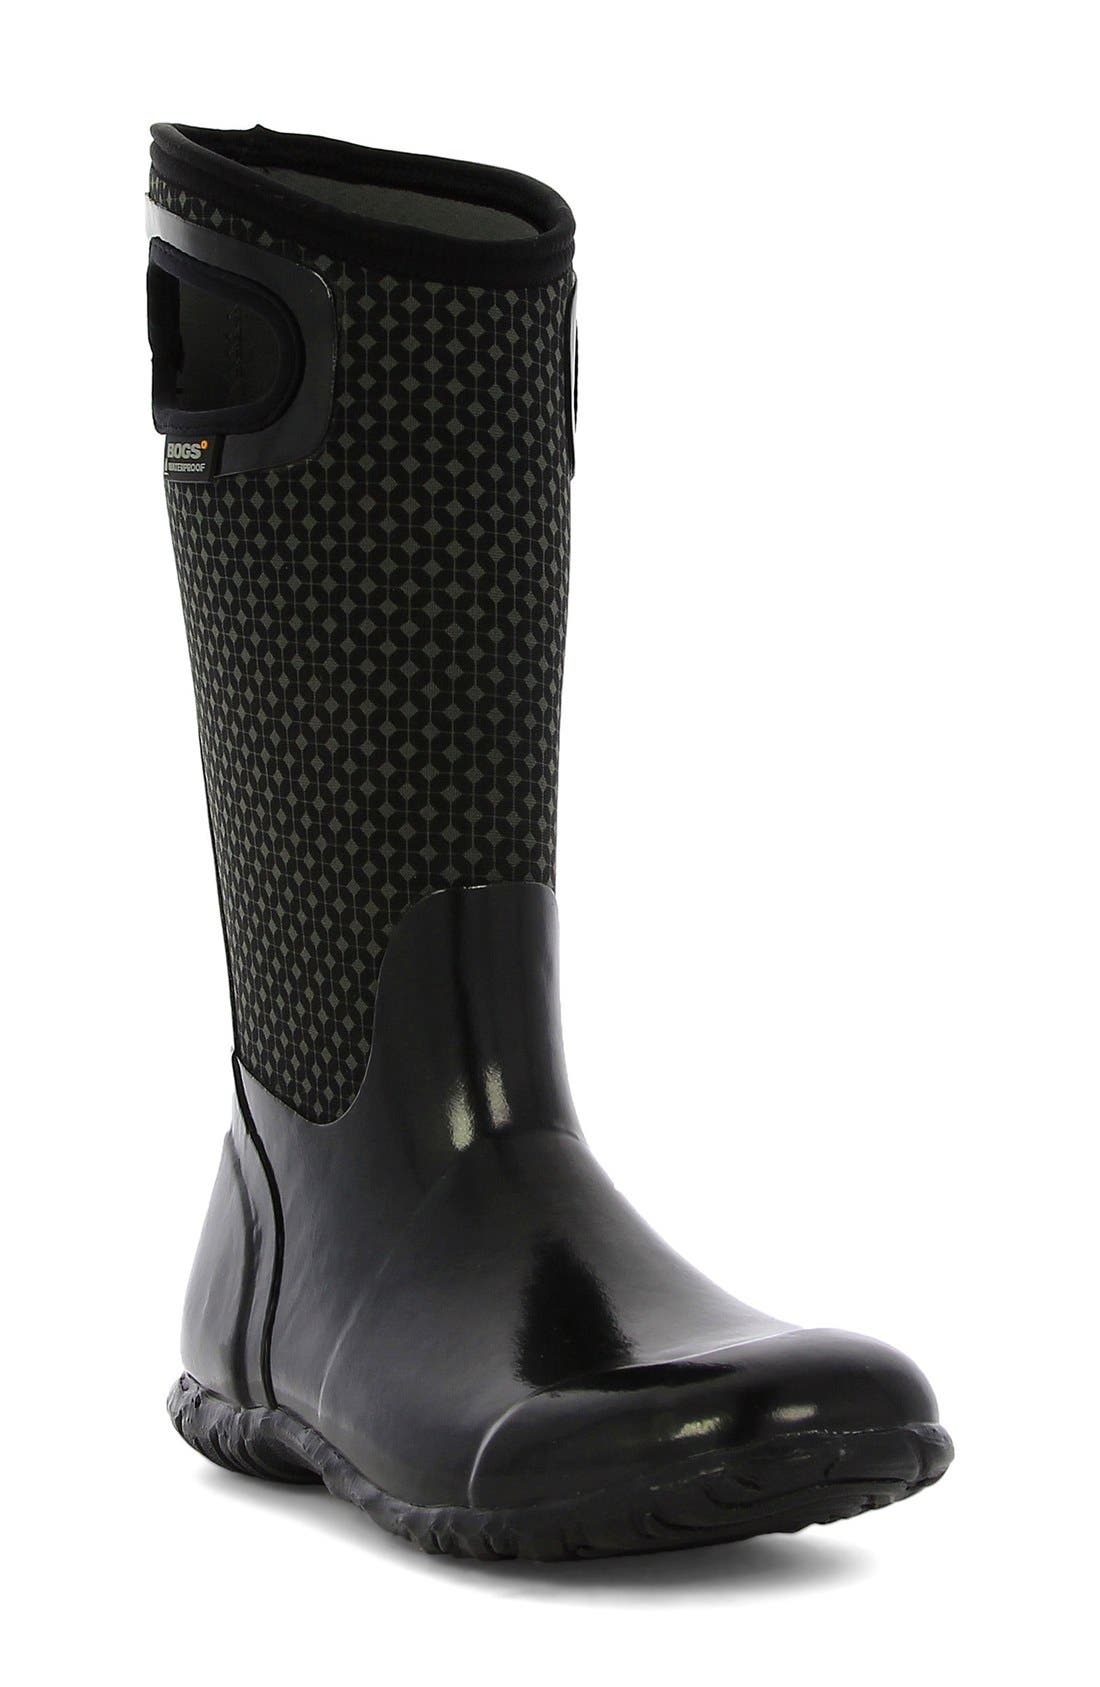 BOGS 'North Hampton' Waterproof Rain Boot